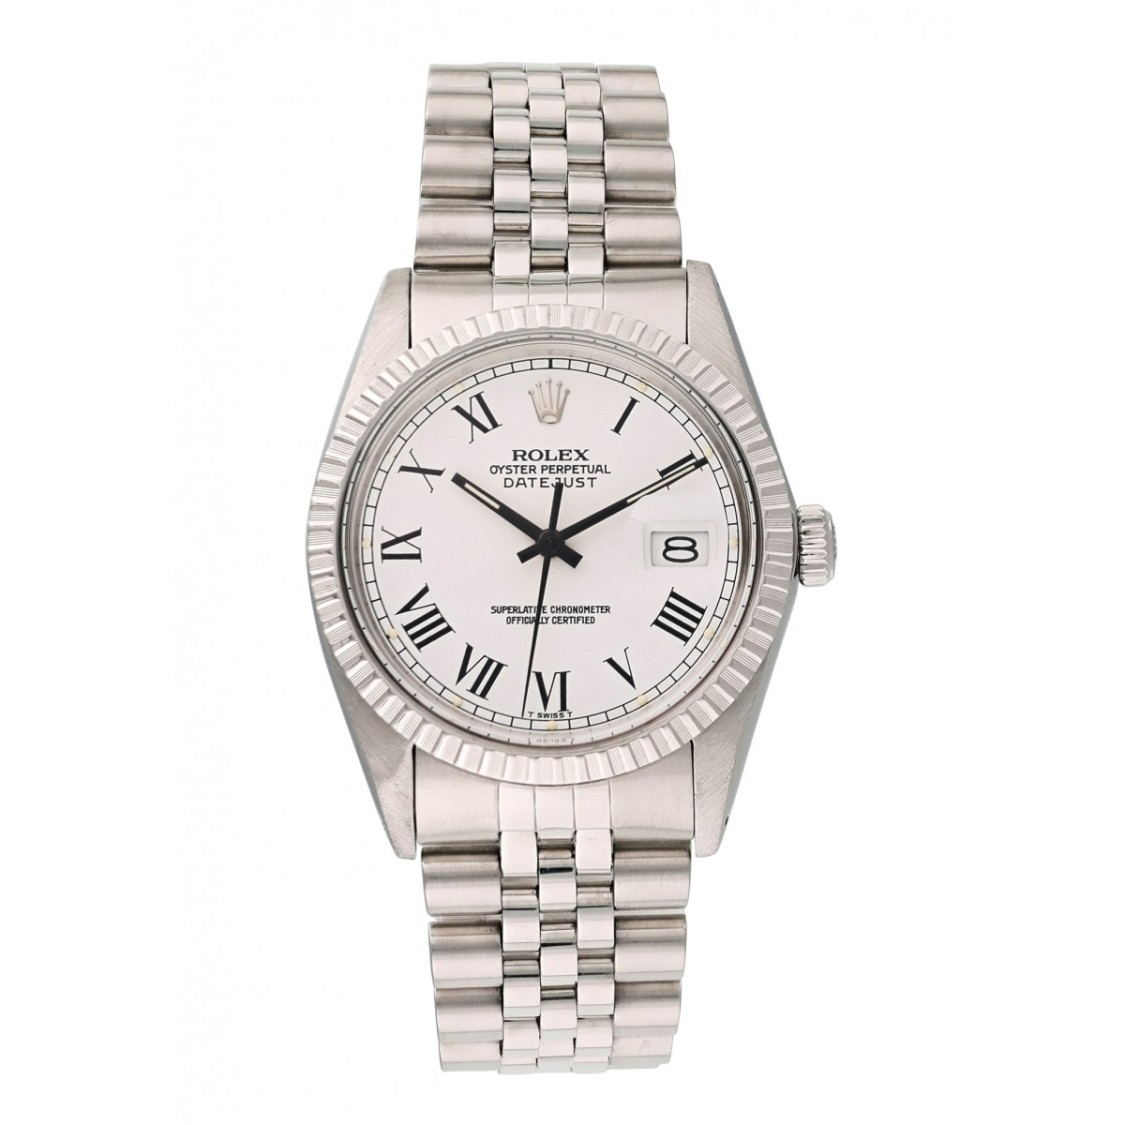 Rolex Lingerie DATEJUST 16030 BUCKLEY DIAL MENS WATCH